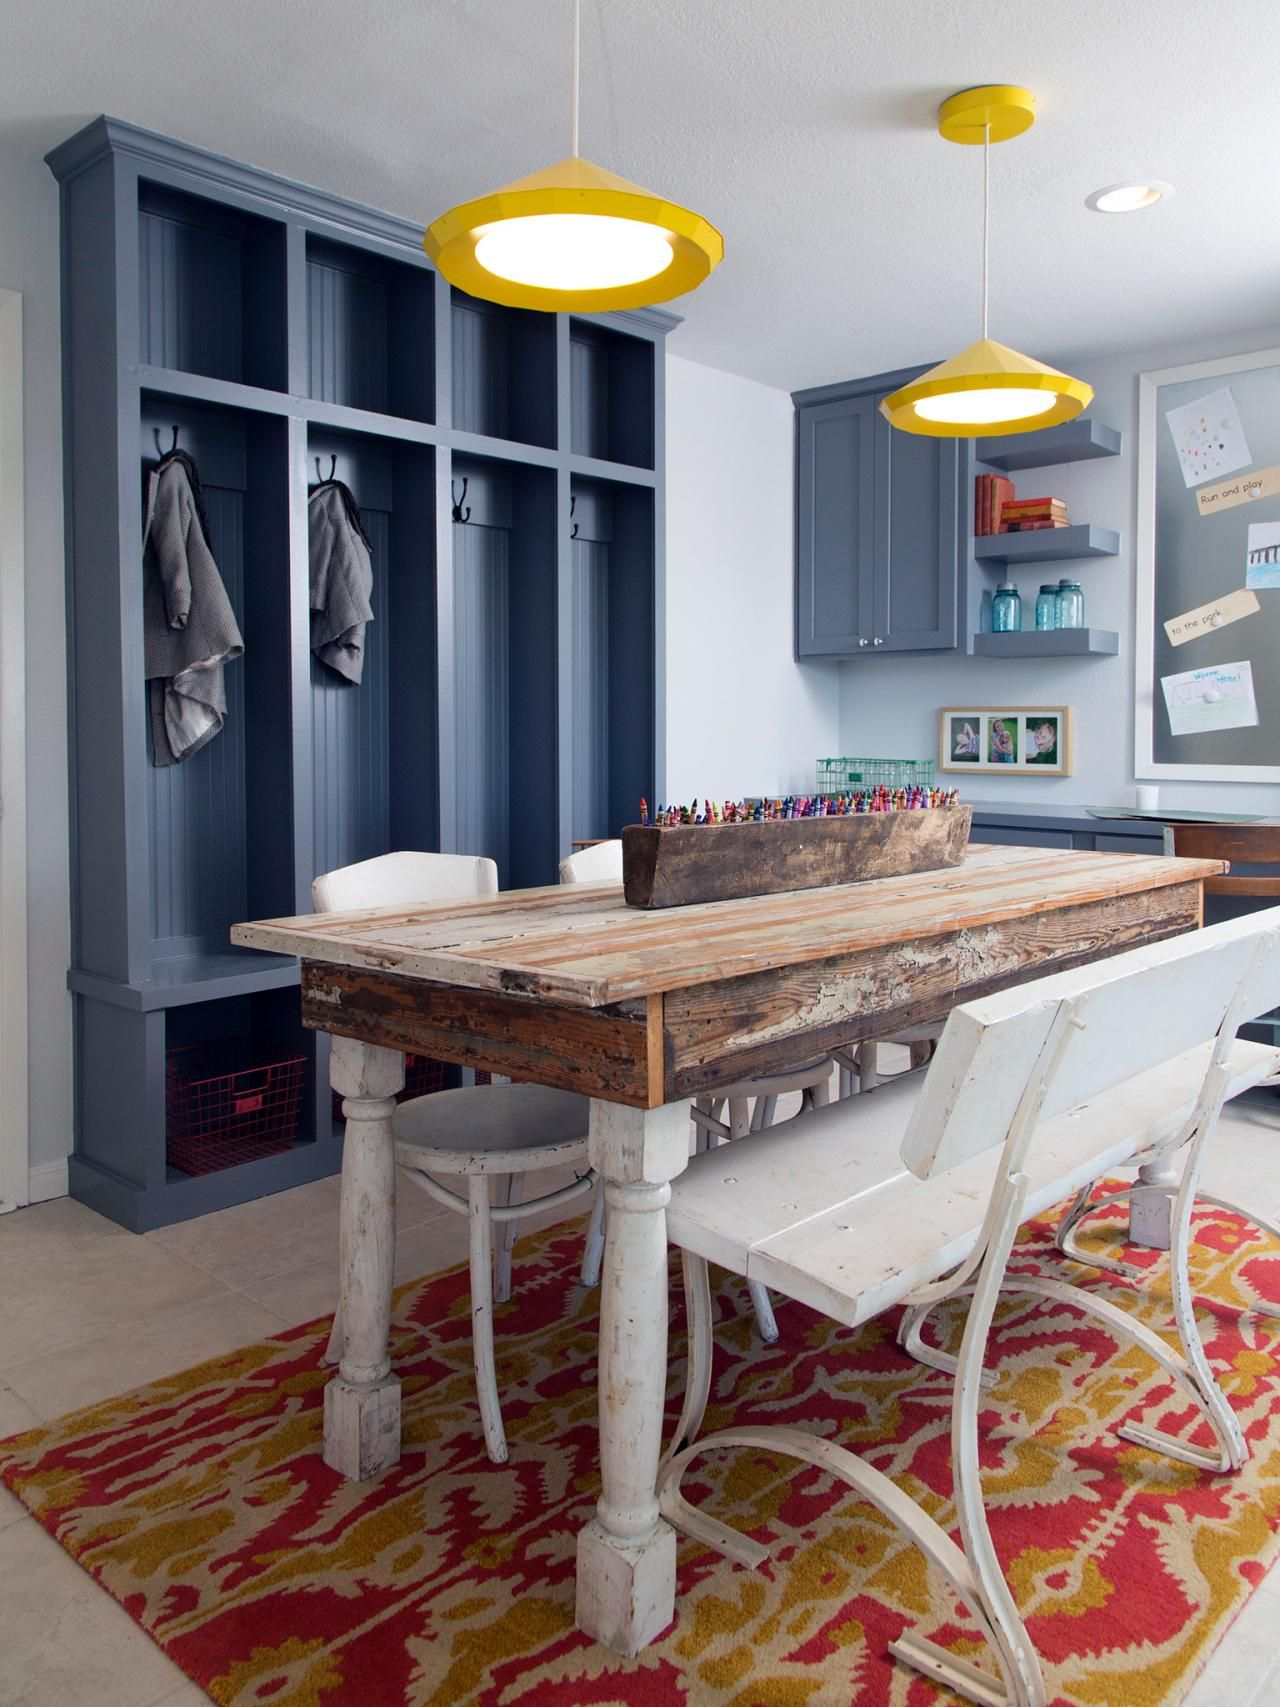 A Trio Of Vintage Chairs And A Wood Bench In Distressed White Finish  Provide Seating At The Craft Table While A Boldly Patterned Area Rug Adds A  Vibrant ...